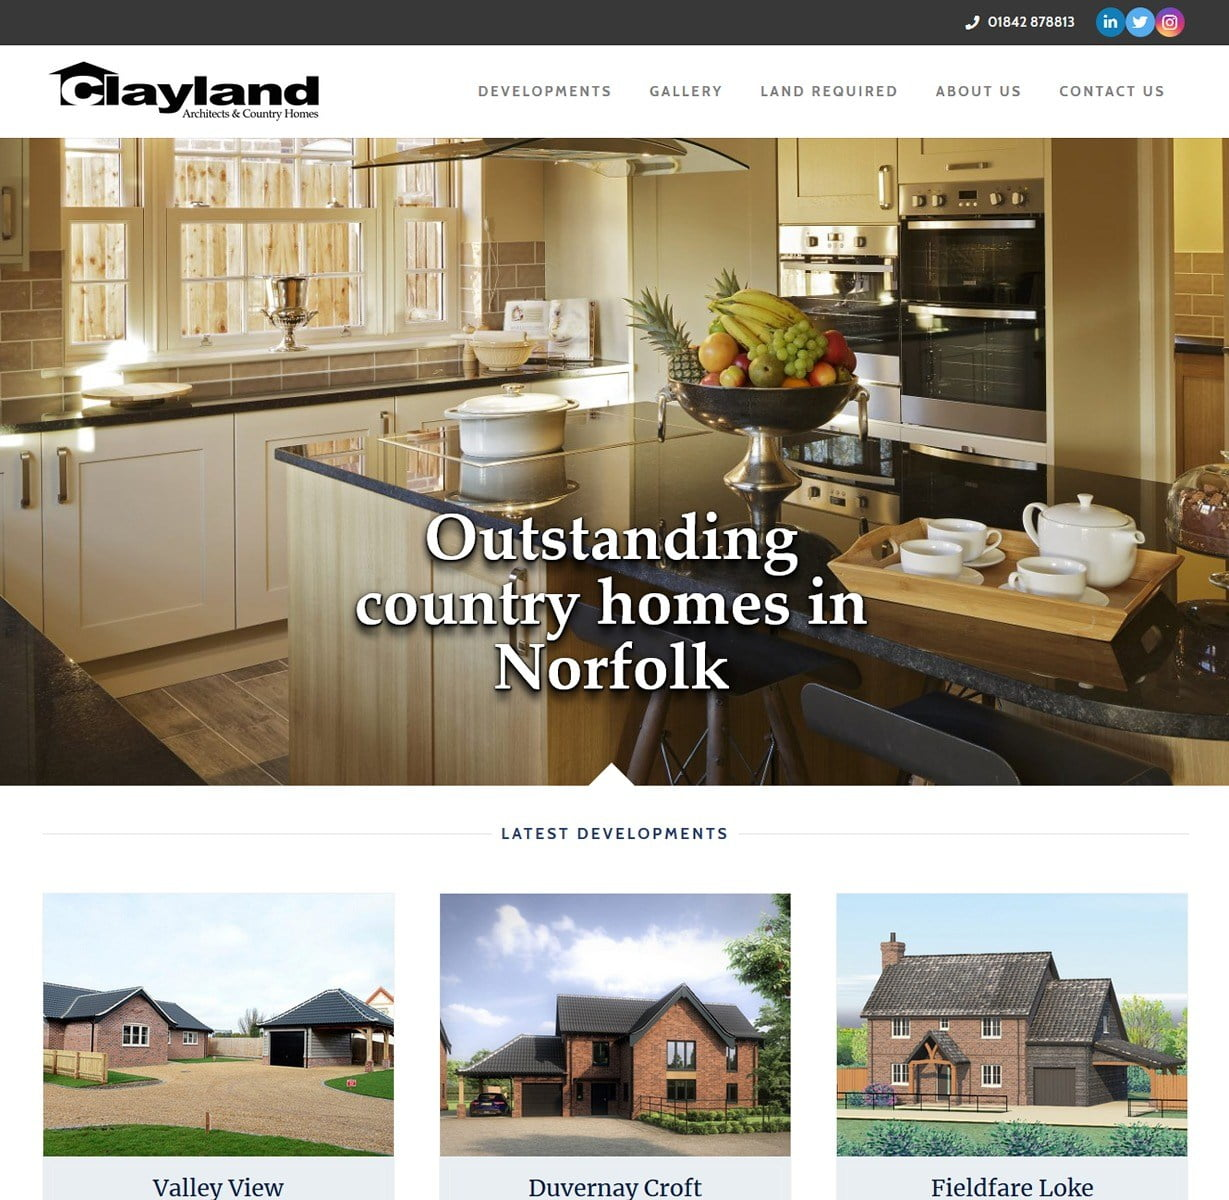 Clayland homes website build. Based in Mundford, Norfolk